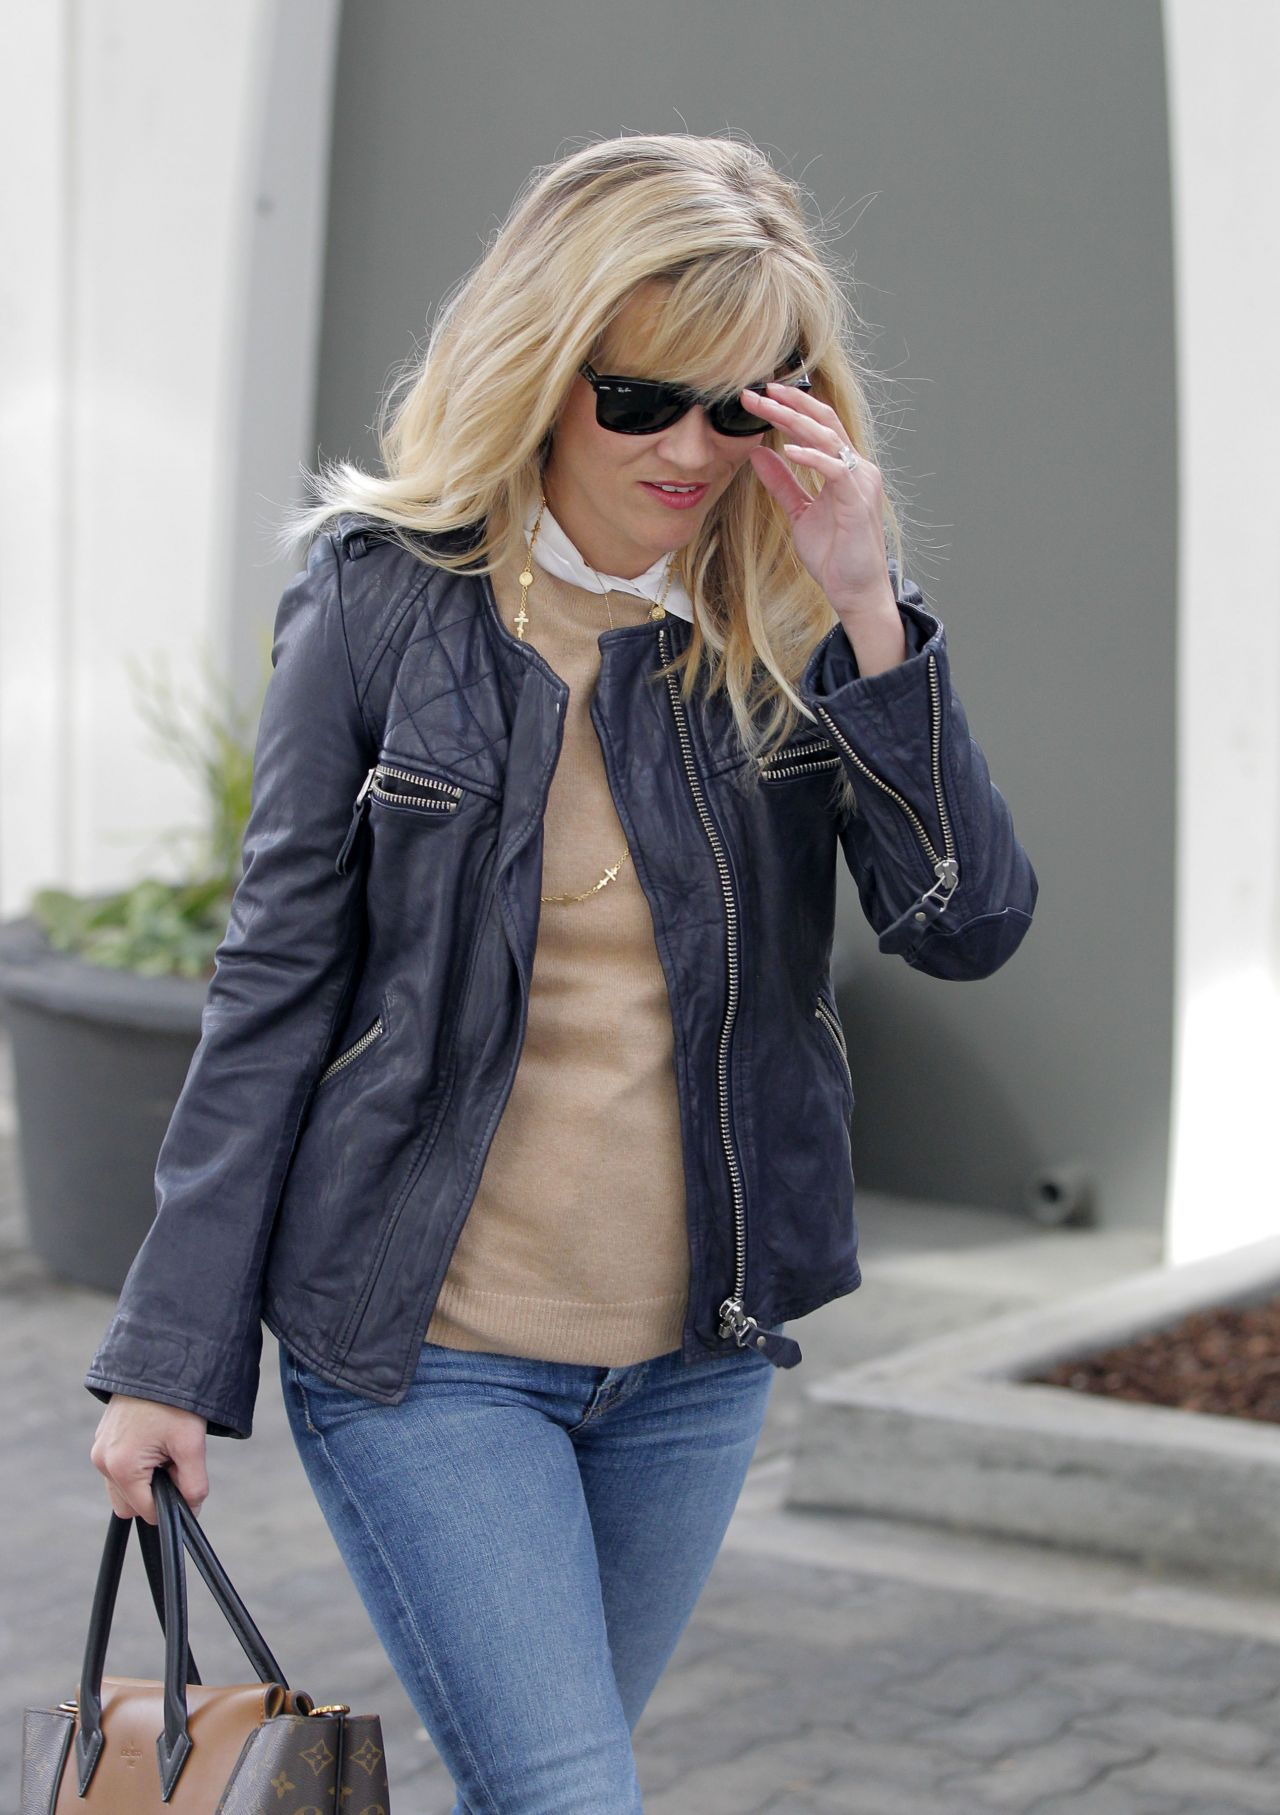 Reese Witherspoon Street Style - Leaving Her Office in Beverly Hills, December 2014